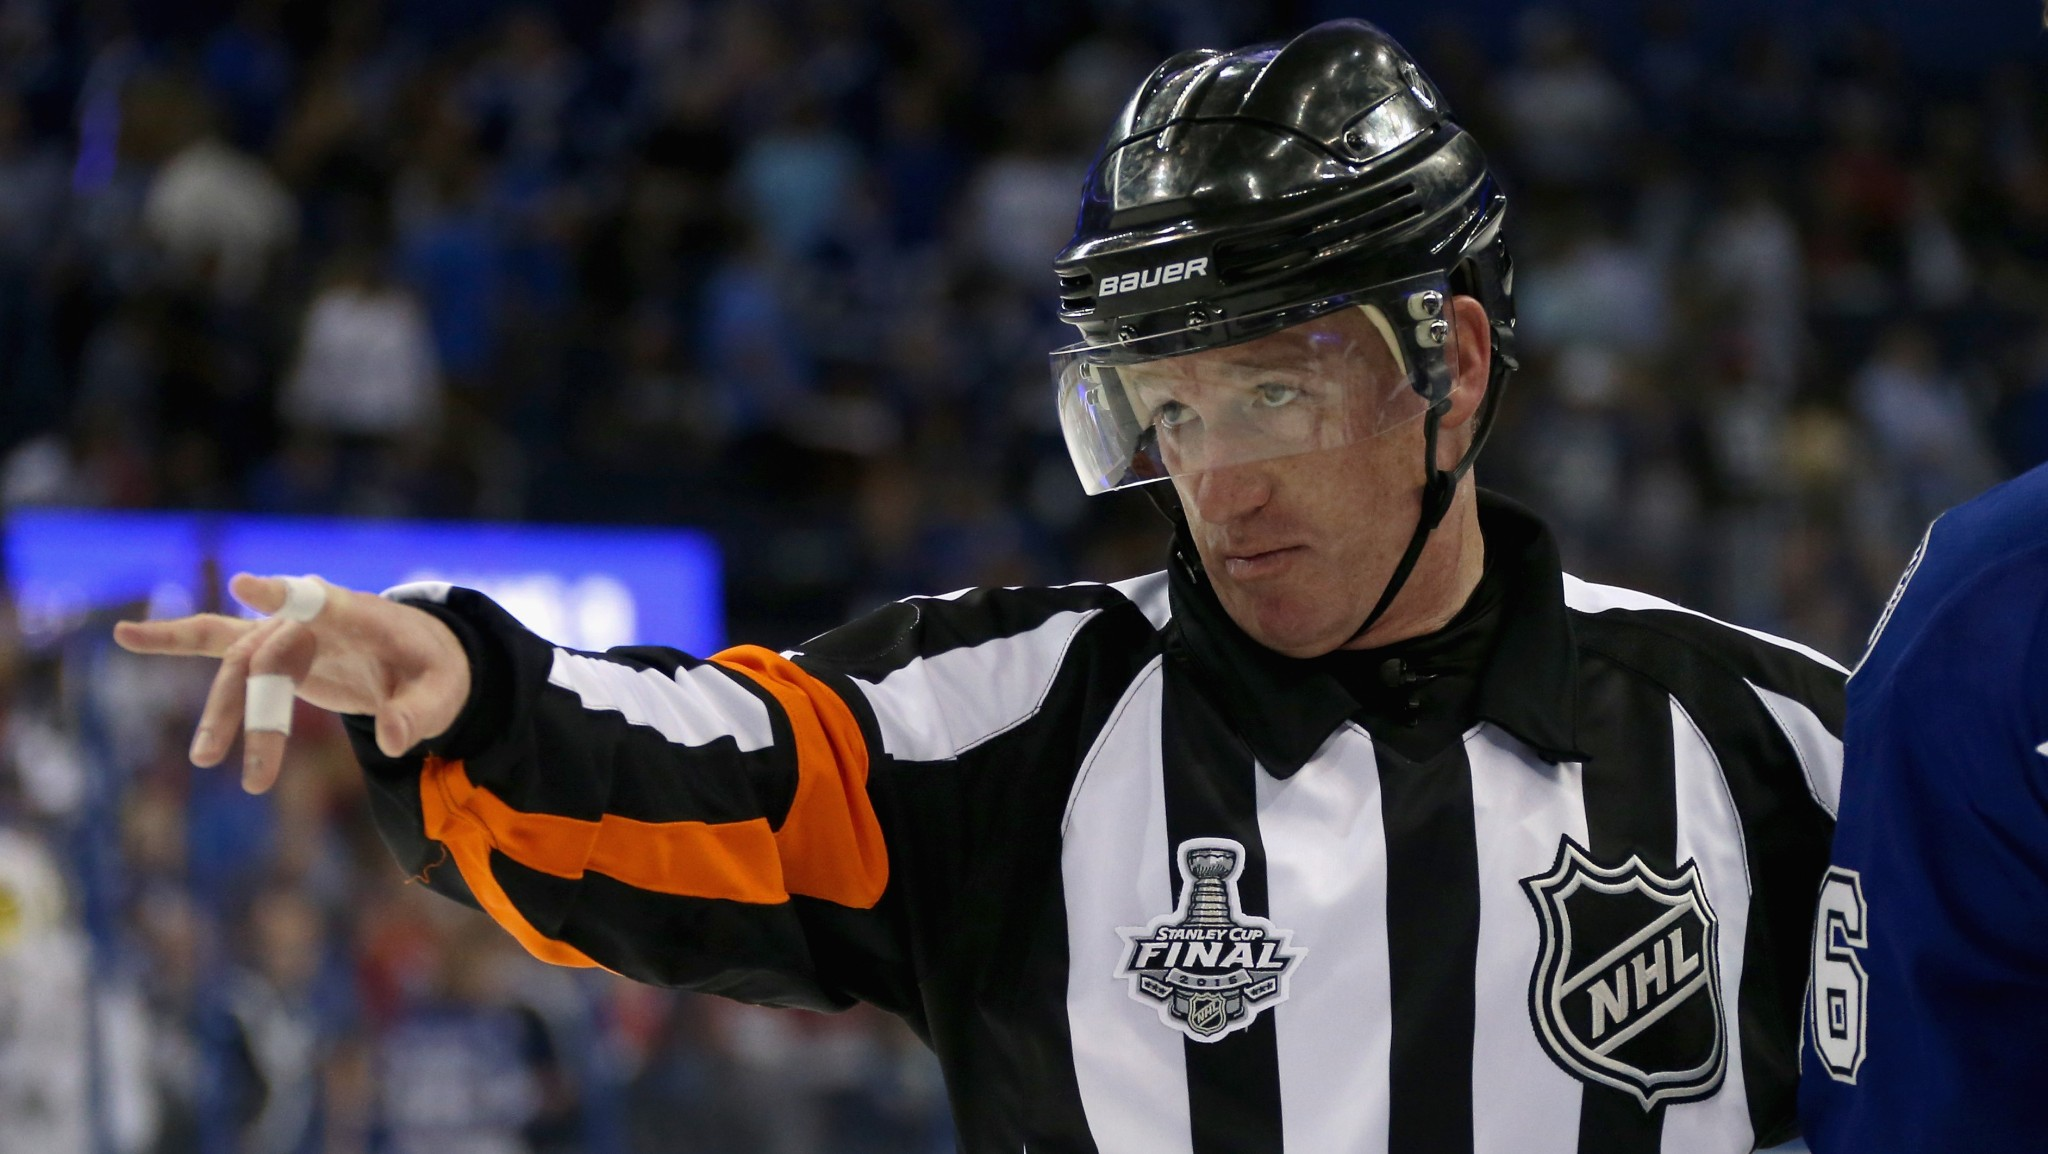 The Five Nhl Rules You Definitely Need To Know